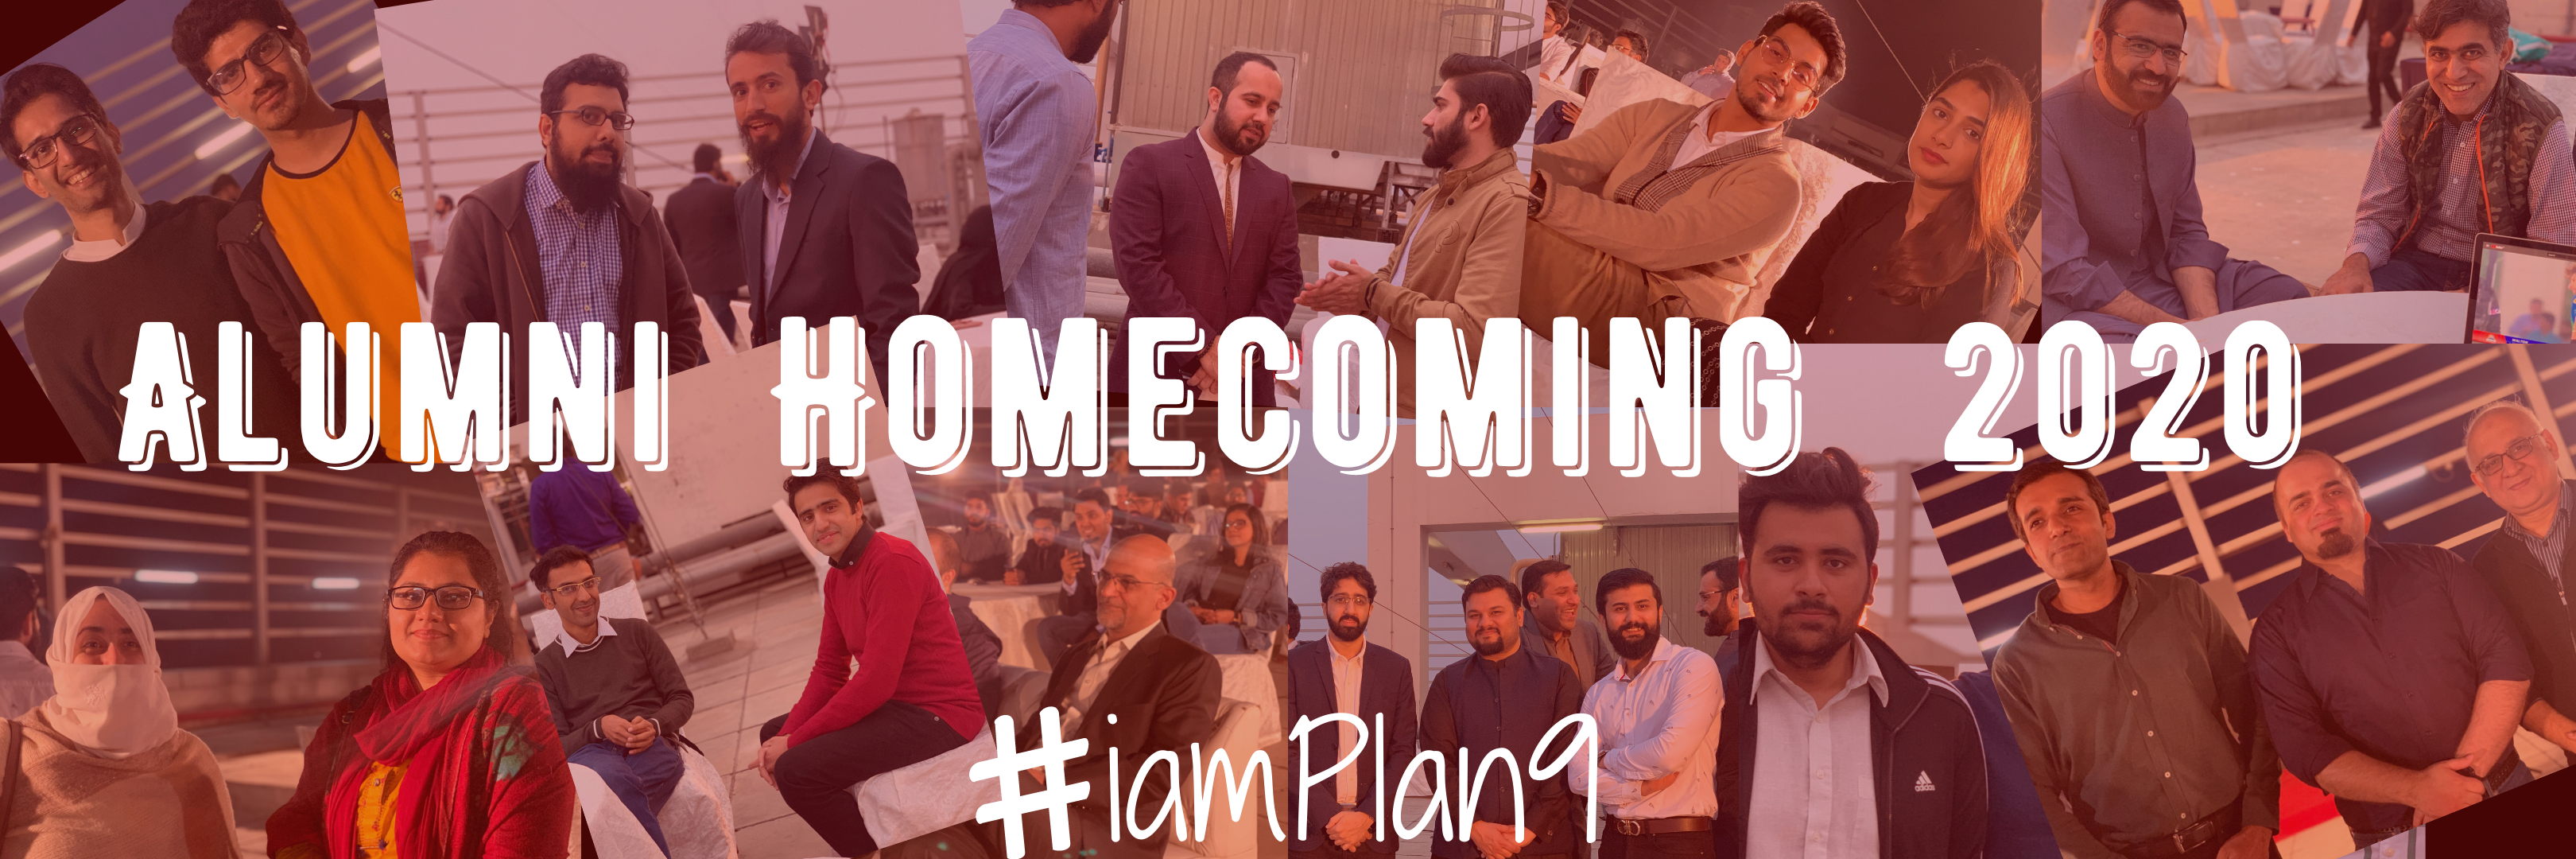 Plan9-Alumni-Homecoming-2020-techjuice